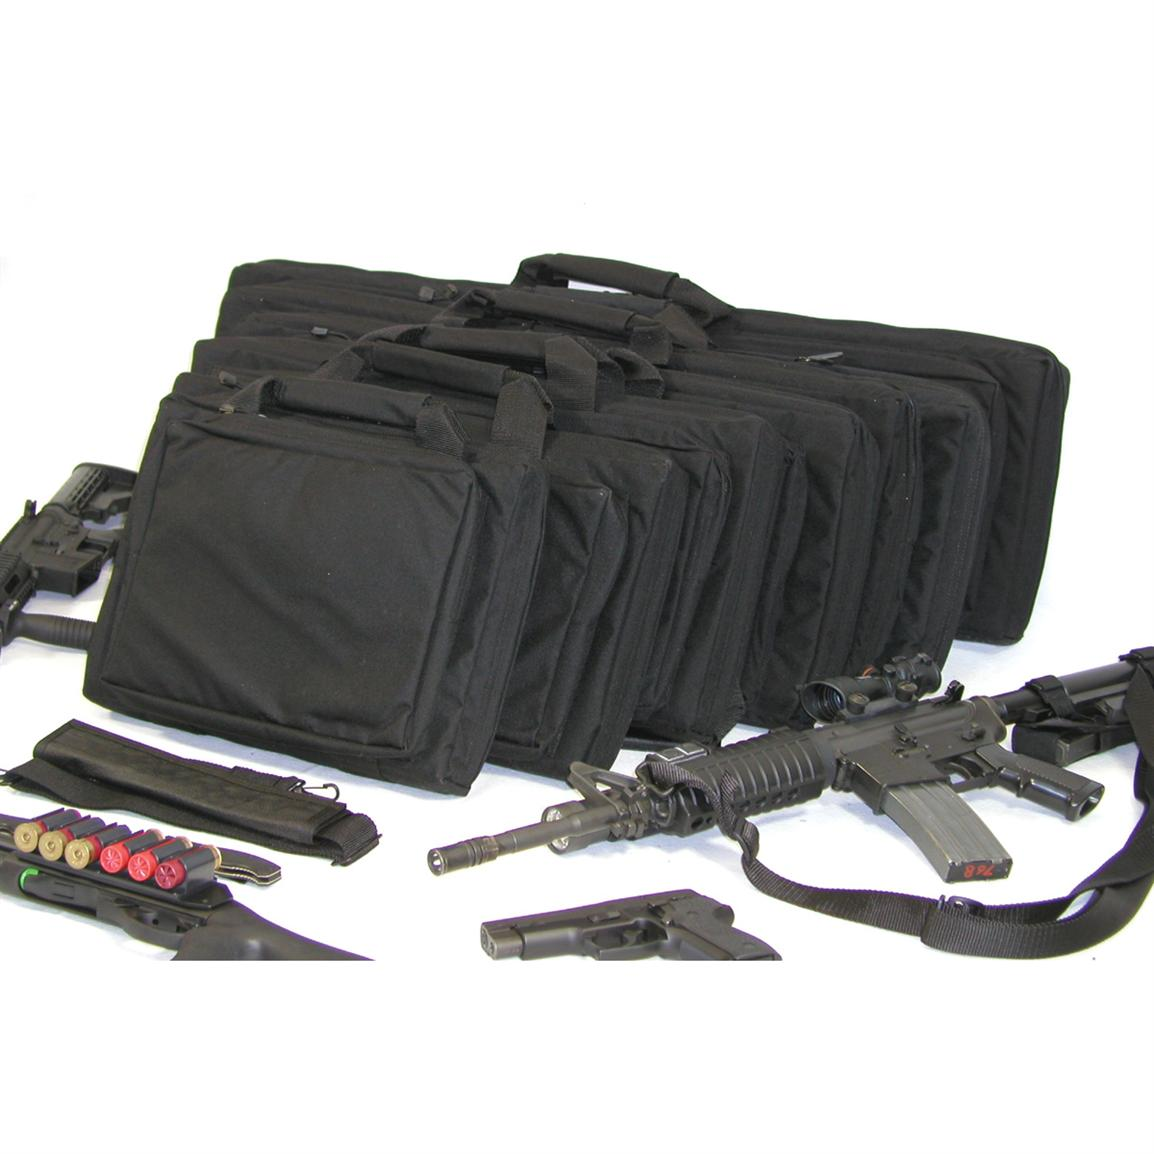 BlackHawk Homeland Security Discreet Cases